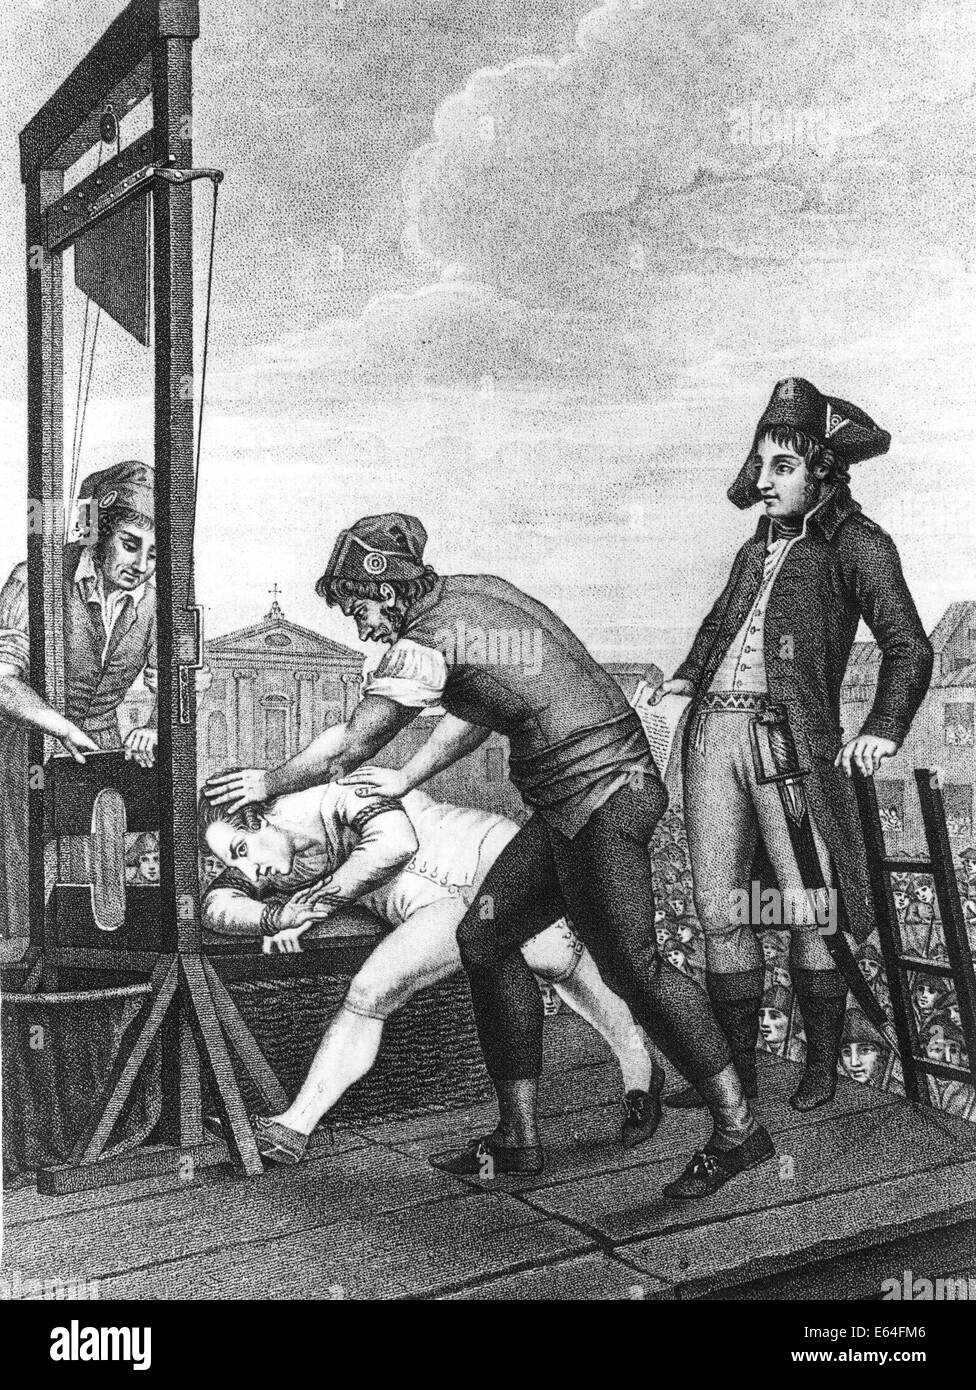 MAXIMILIEN de ROBESPIERRE (1758-1794) French politician executed during he  French Revolution - contemporary print